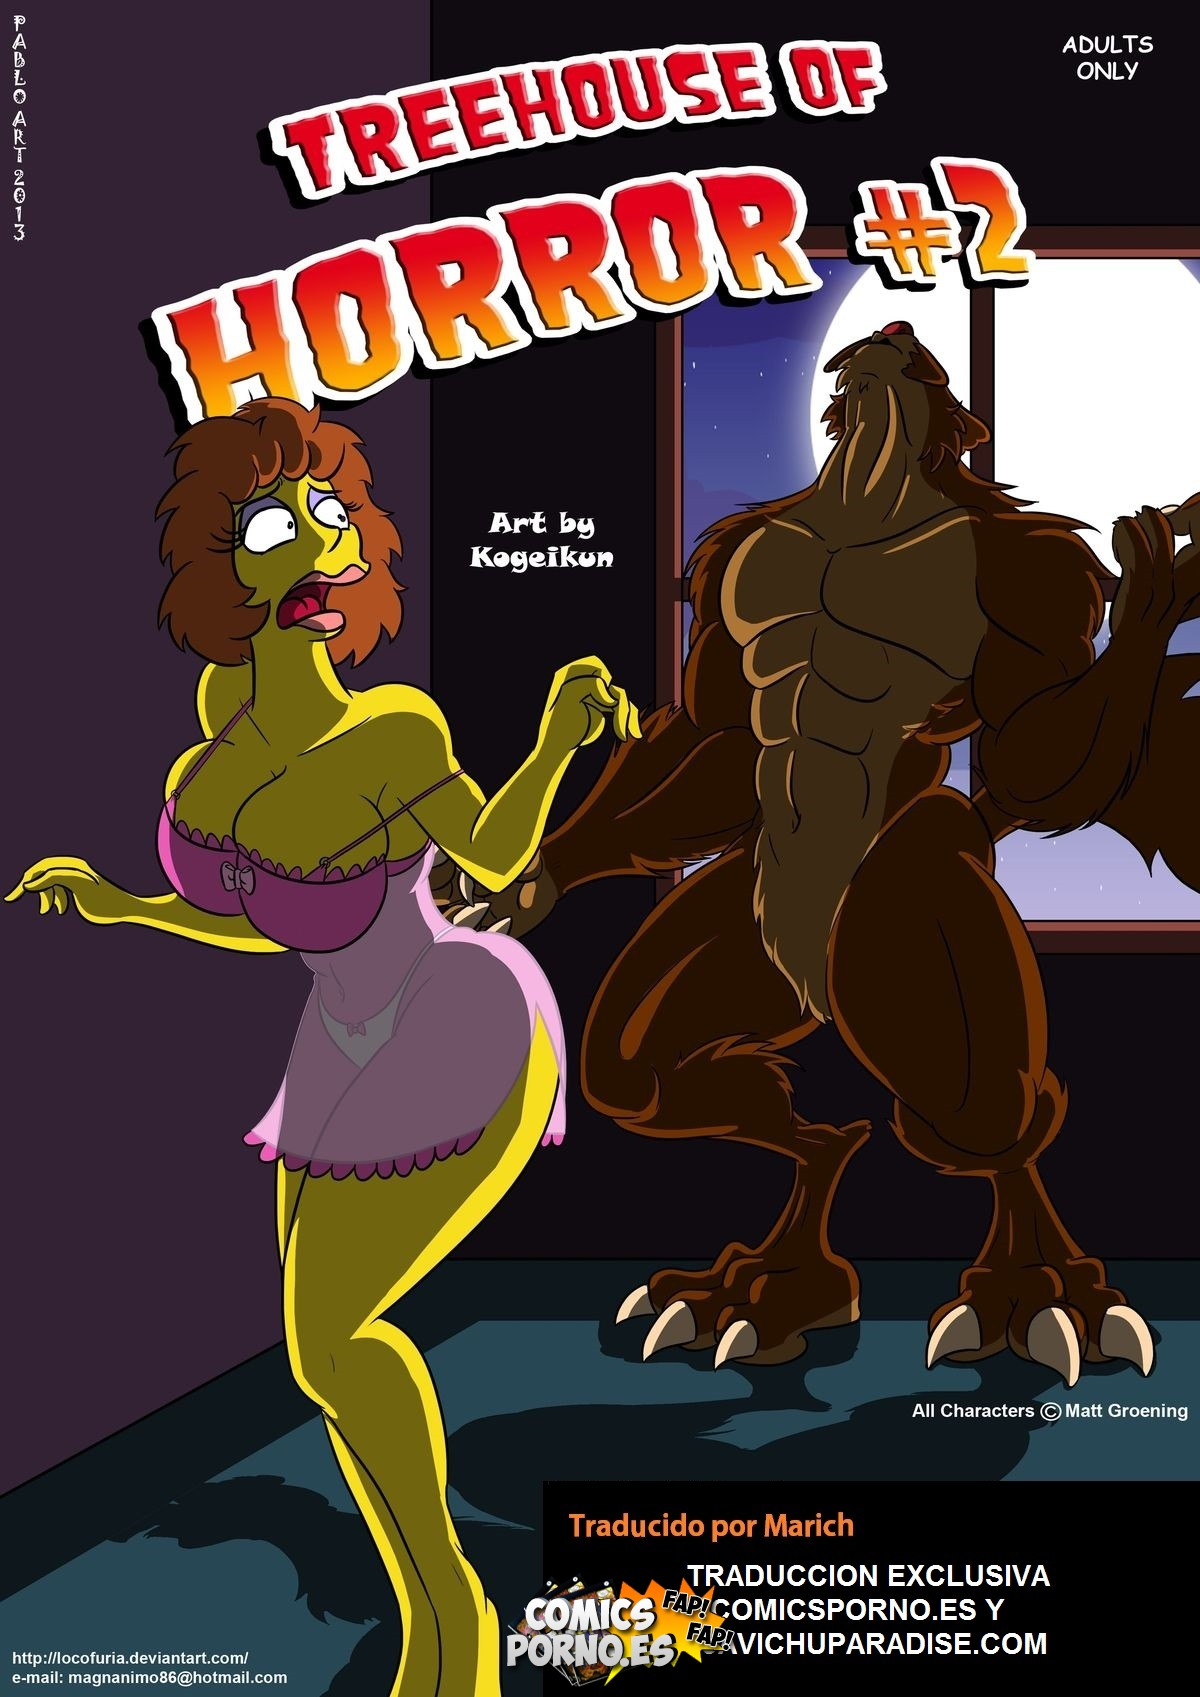 Treehouse of Horror 2 [Simpsons]